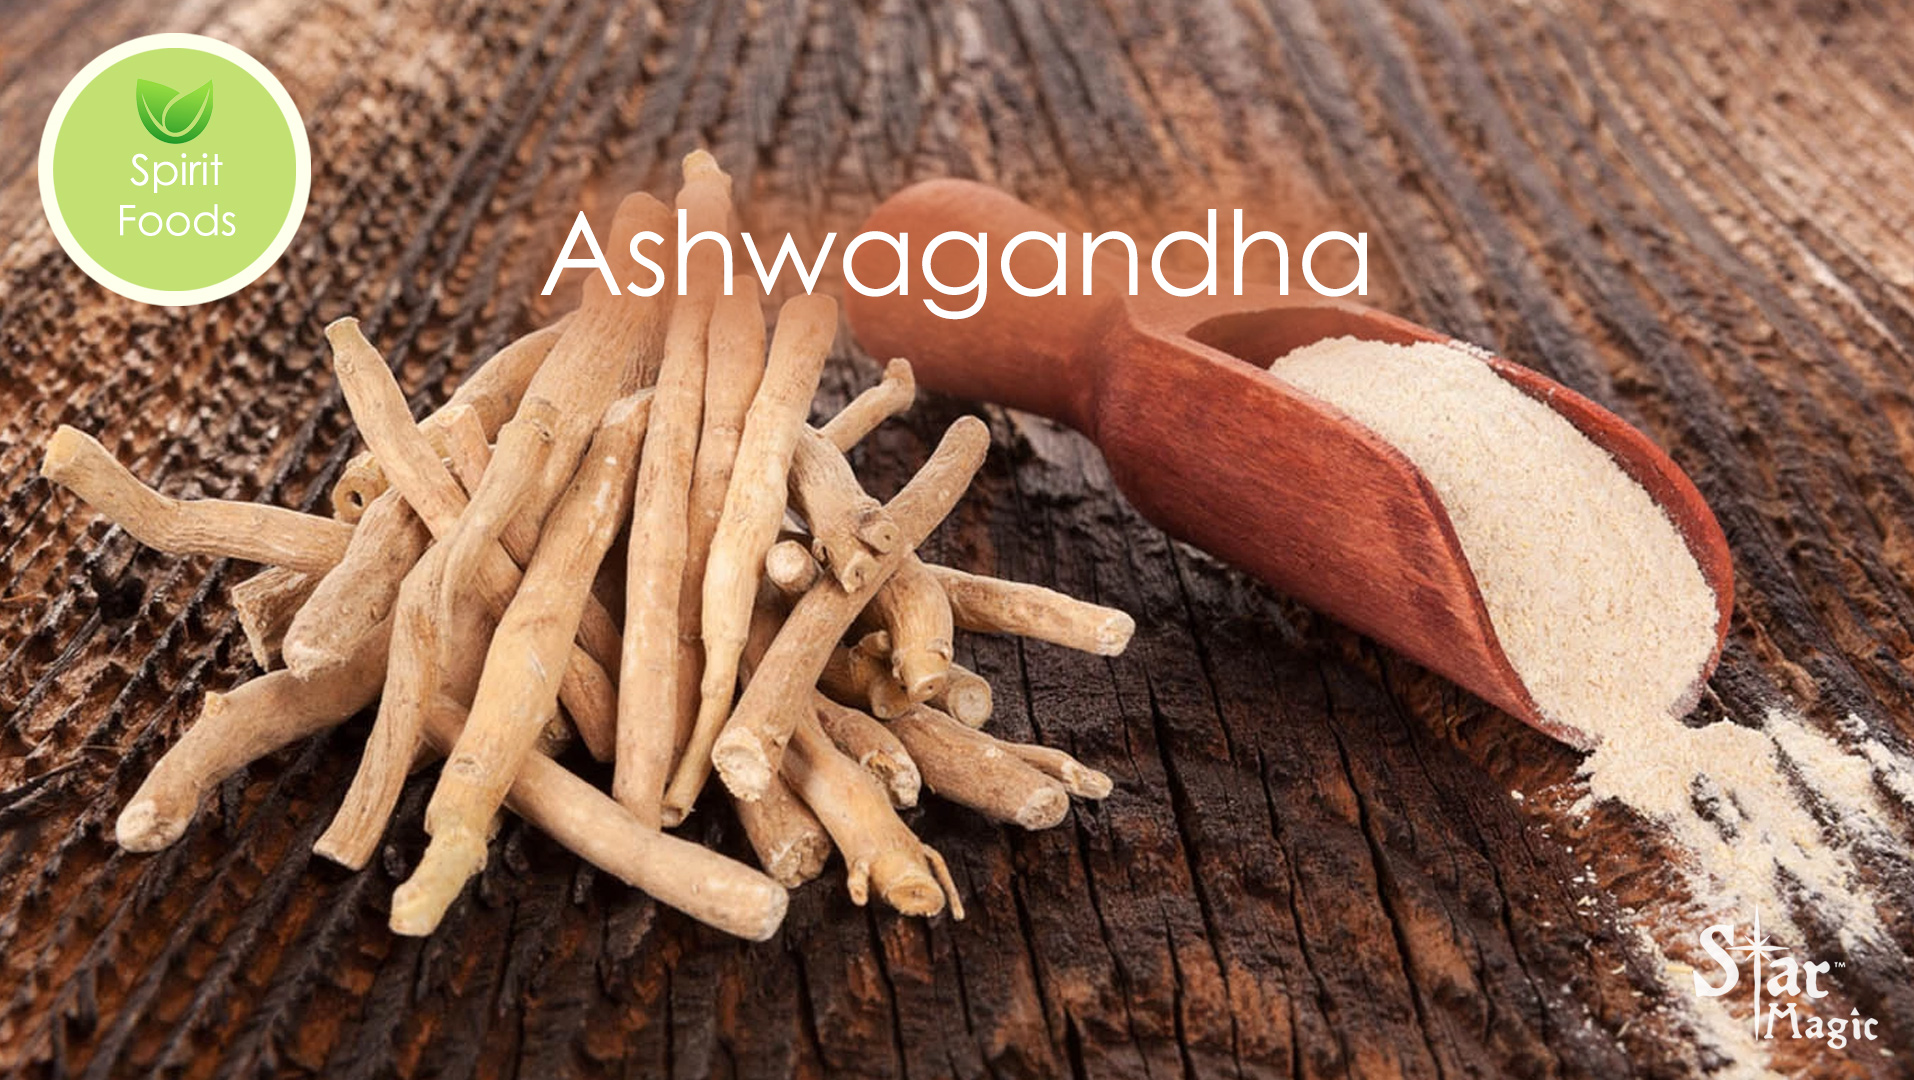 Spirit Food – Ashwagandha